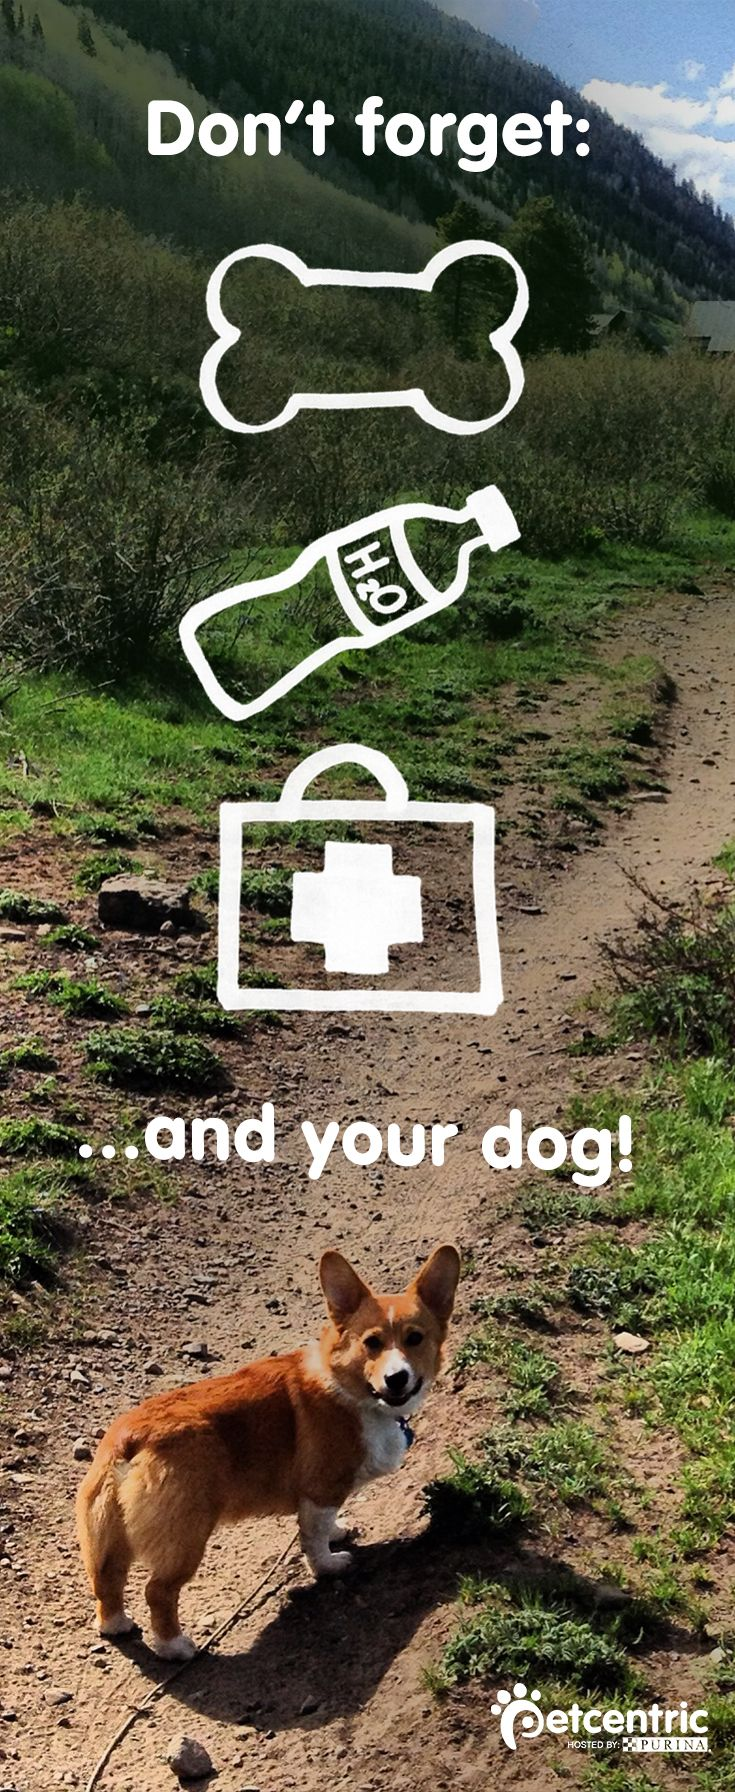 If you and your dog are planning on hiking this Spring, be sure to bring water, a first aid kid and plenty of treats! Head over to  Petcentric.com for other hiking and outdoor activity tips.